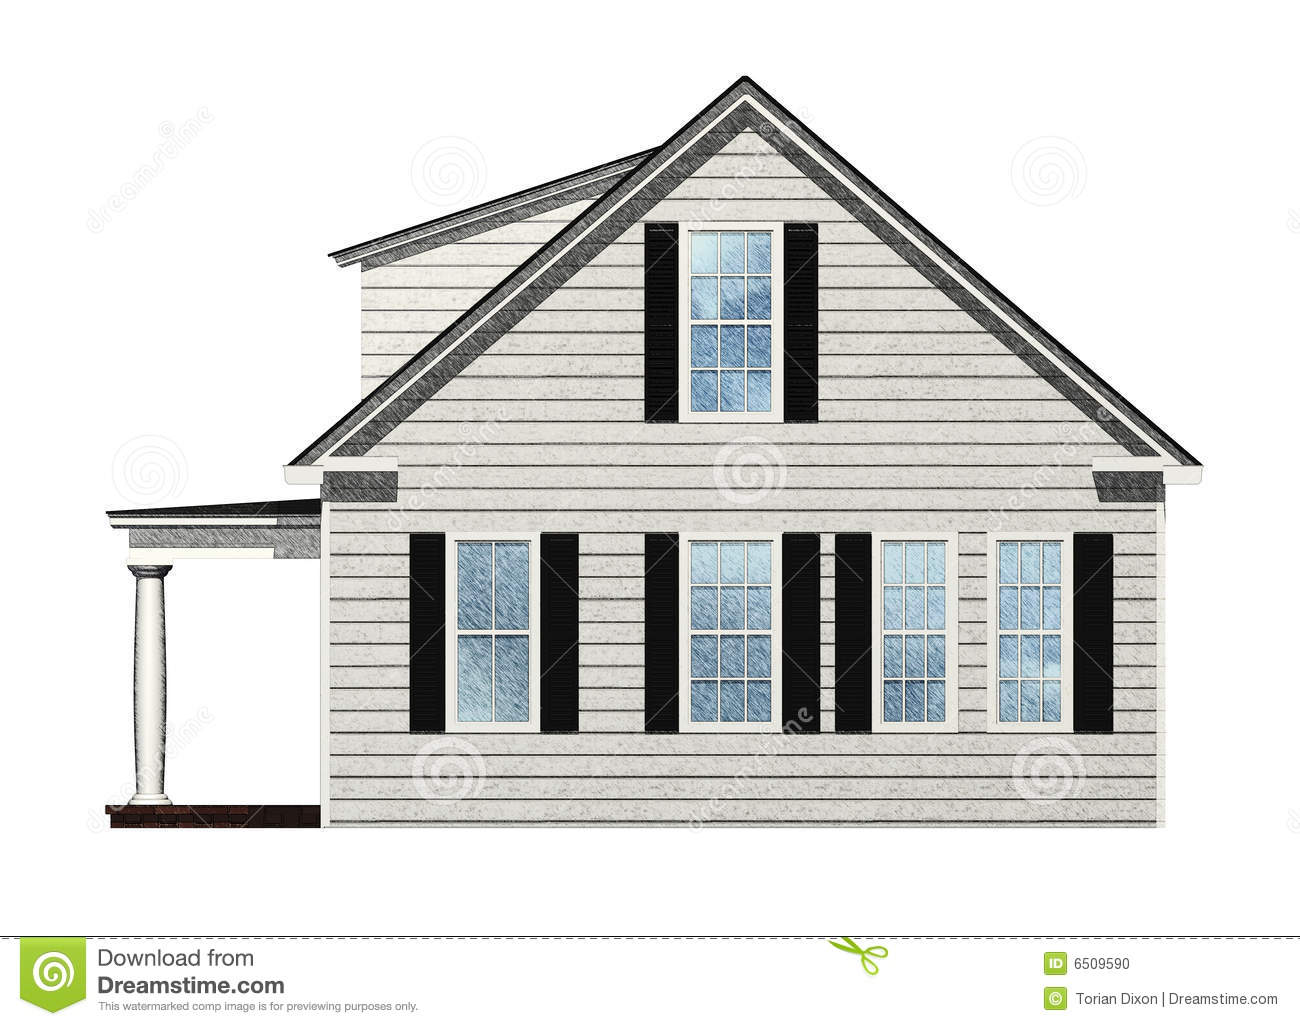 house side view clipart - photo #7